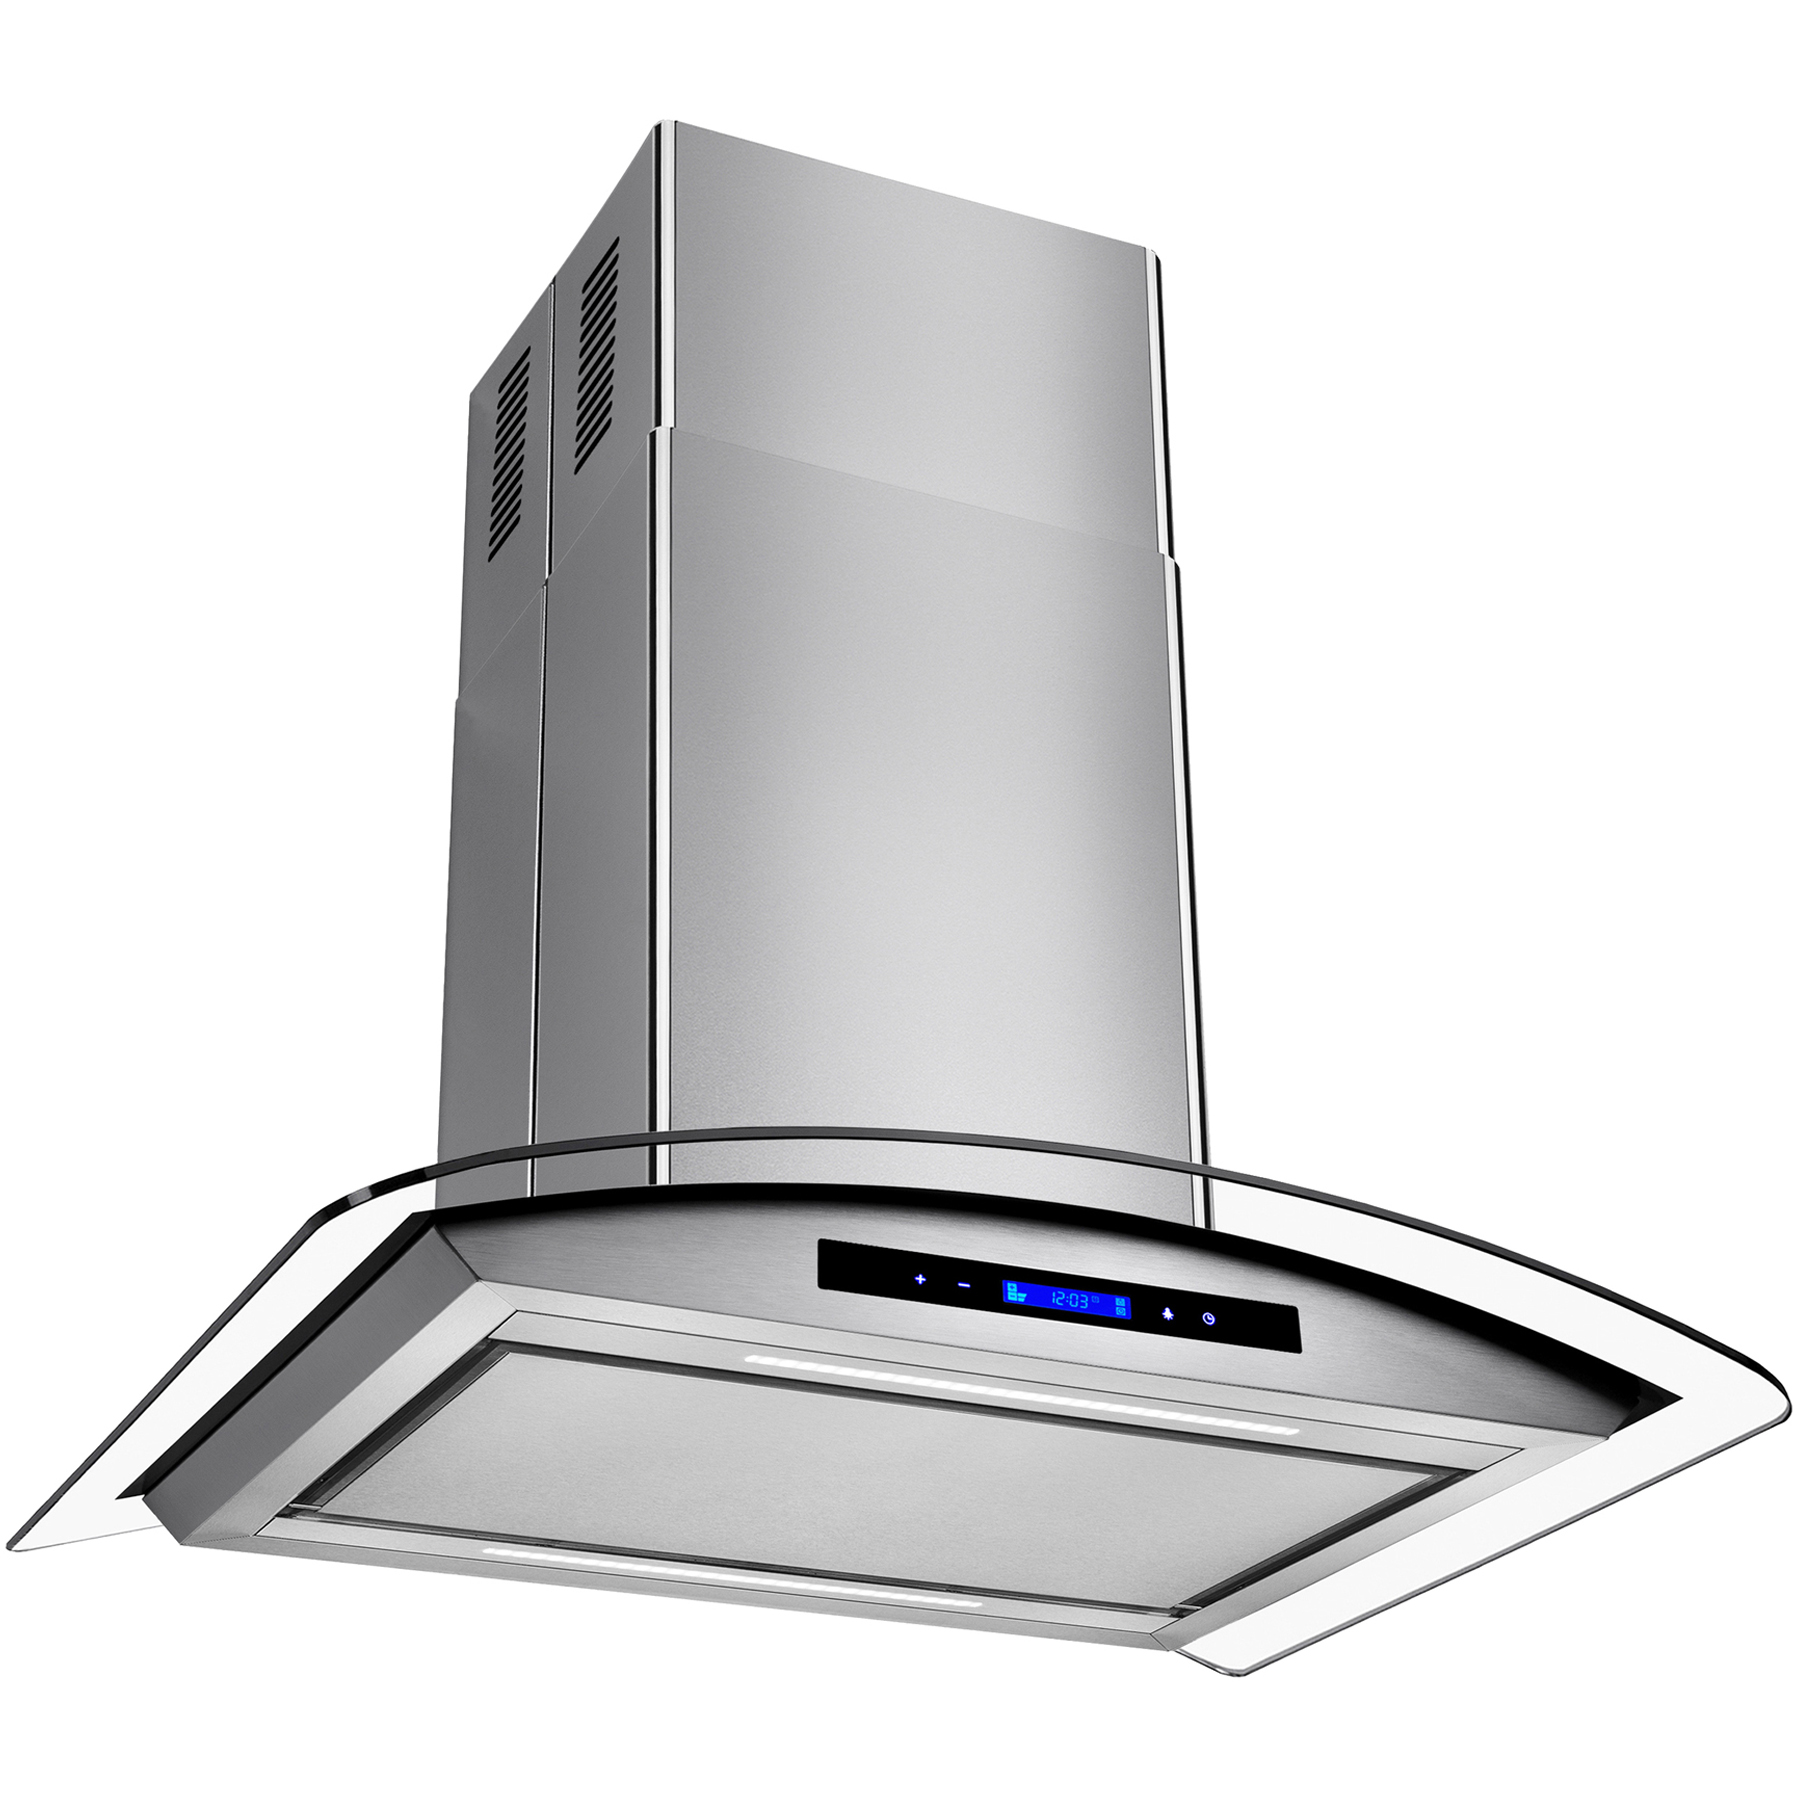 "Image of AKDY 30"" Euro Style Stainless Steel Island Mount Range Hood Kitchen Low Noise with Touch Control Panel"